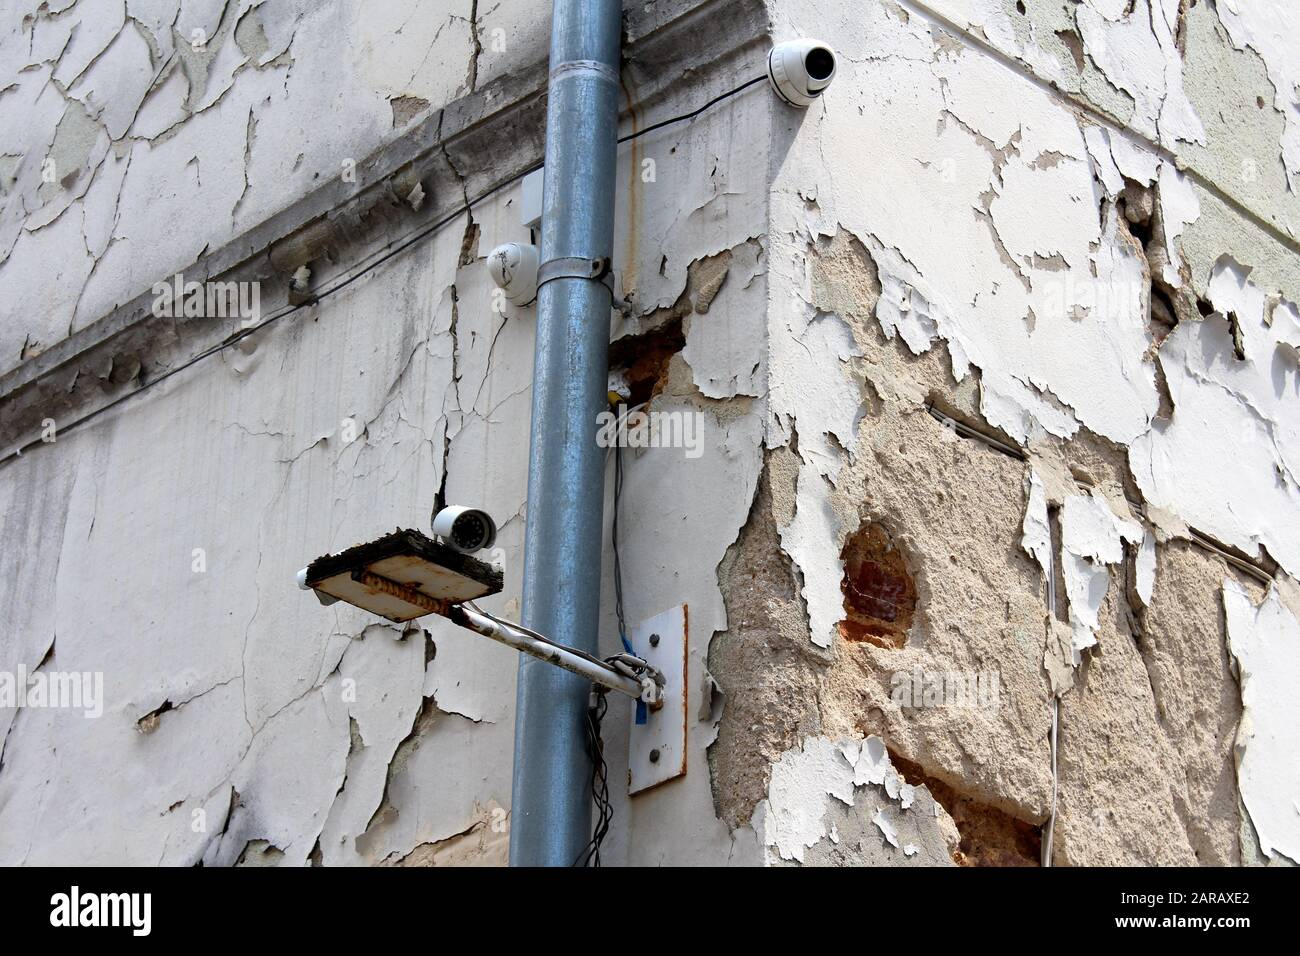 Three new closed circuit TV CCTV security cameras mounted on corner of old abandoned building with dilapidated cracked facade next to new gutter pipe Stock Photo